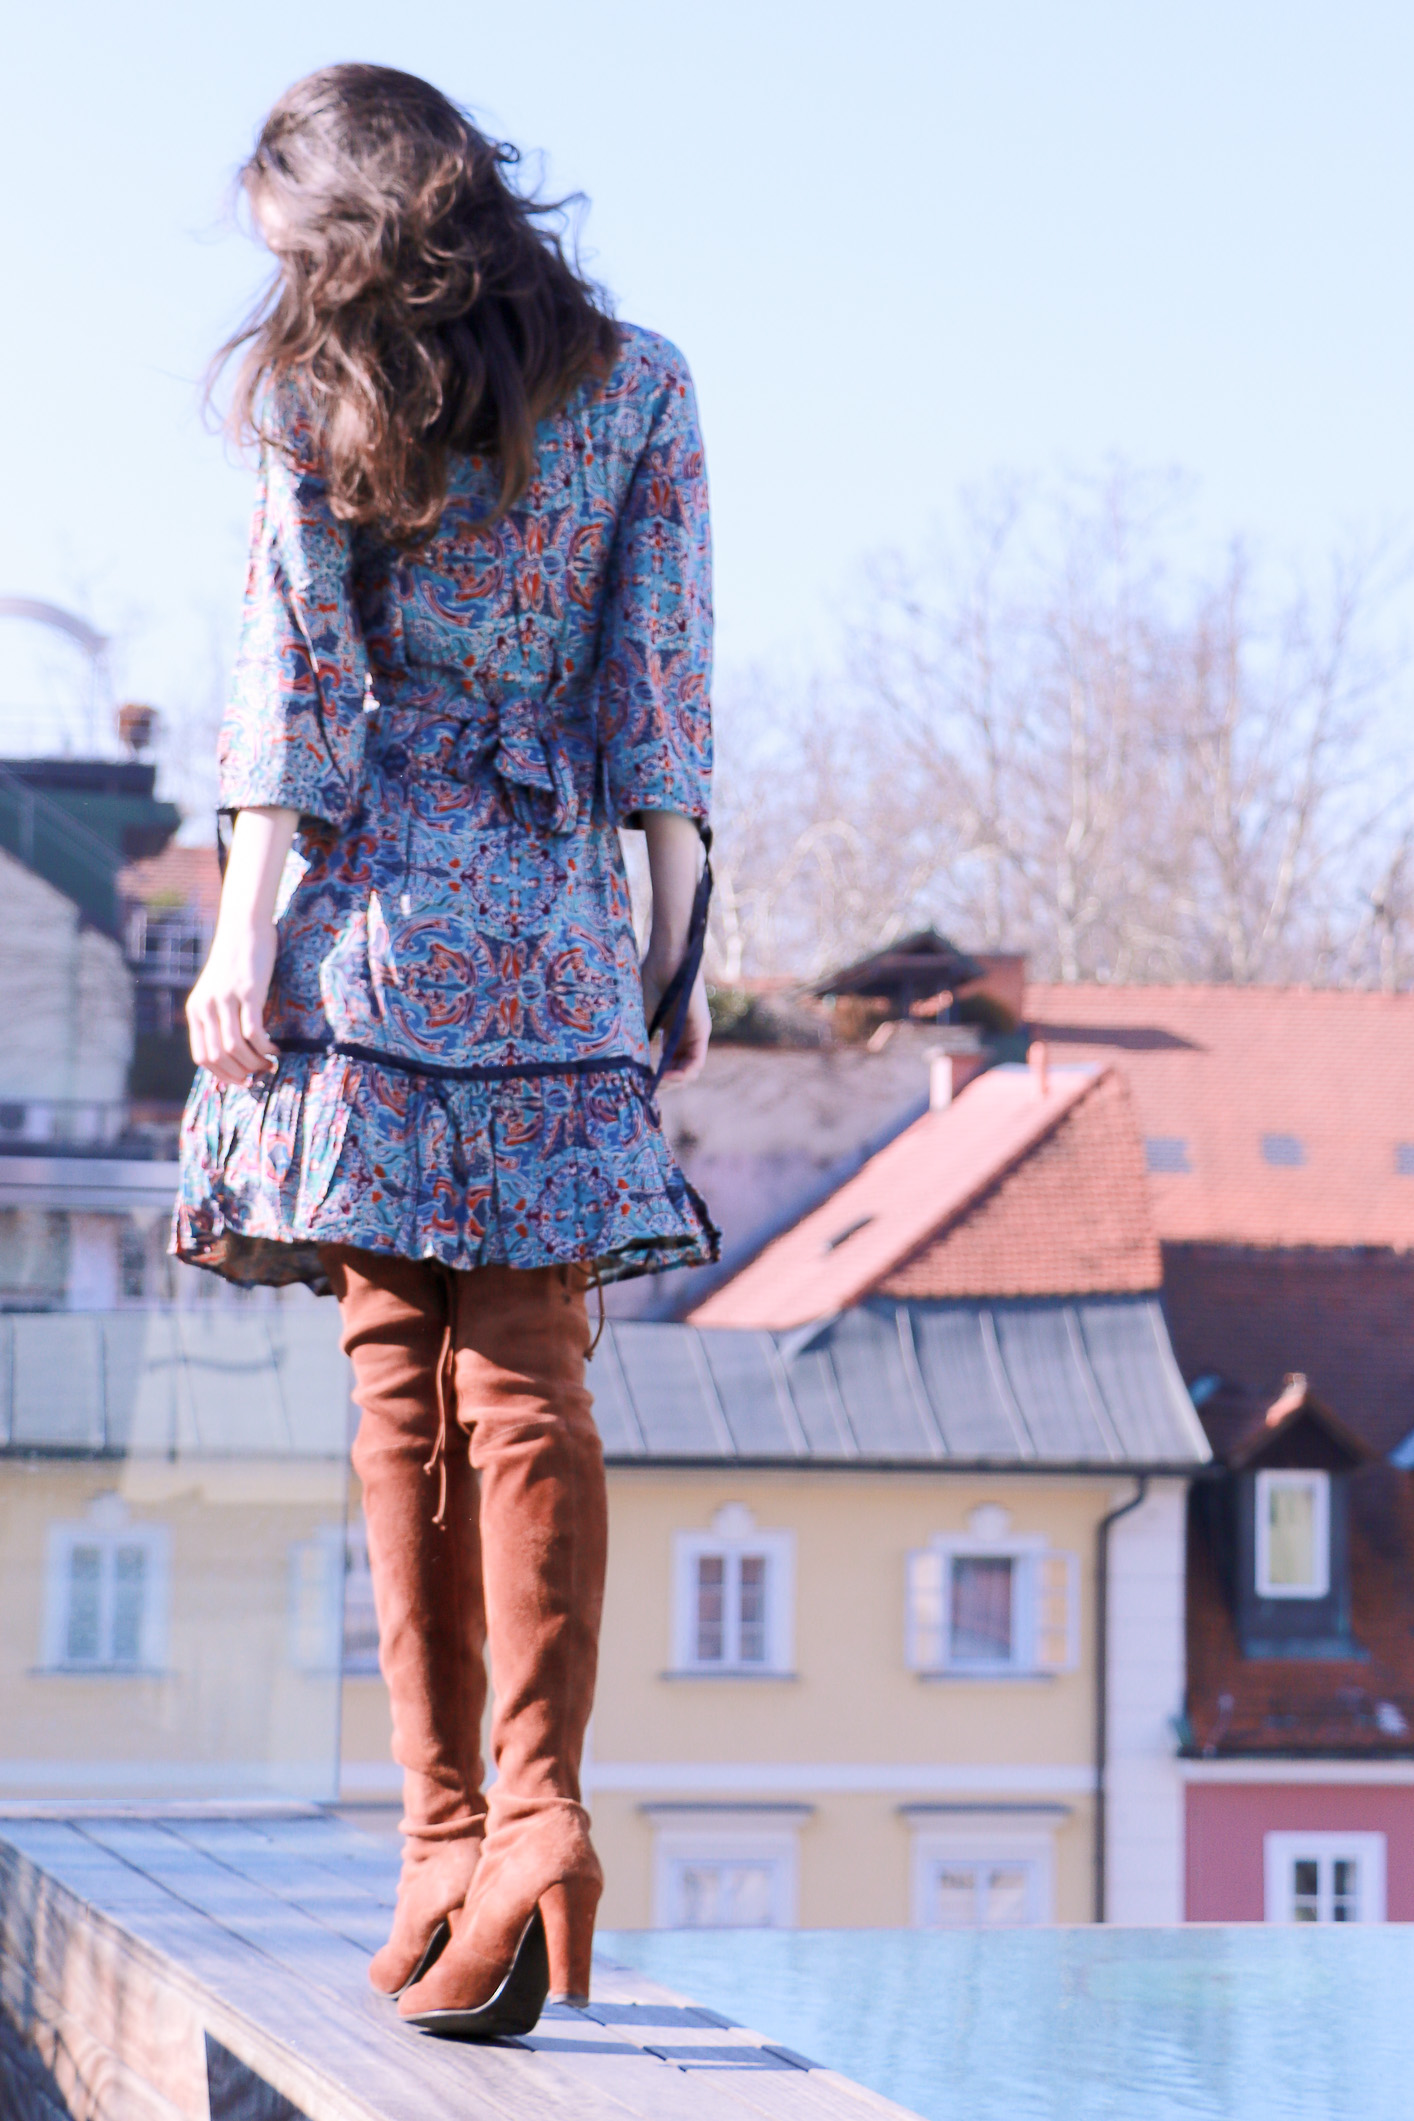 Fashion blogger Veronika Lipar of Brunette From Wall Street sharing how to wear bohemian dress in the city